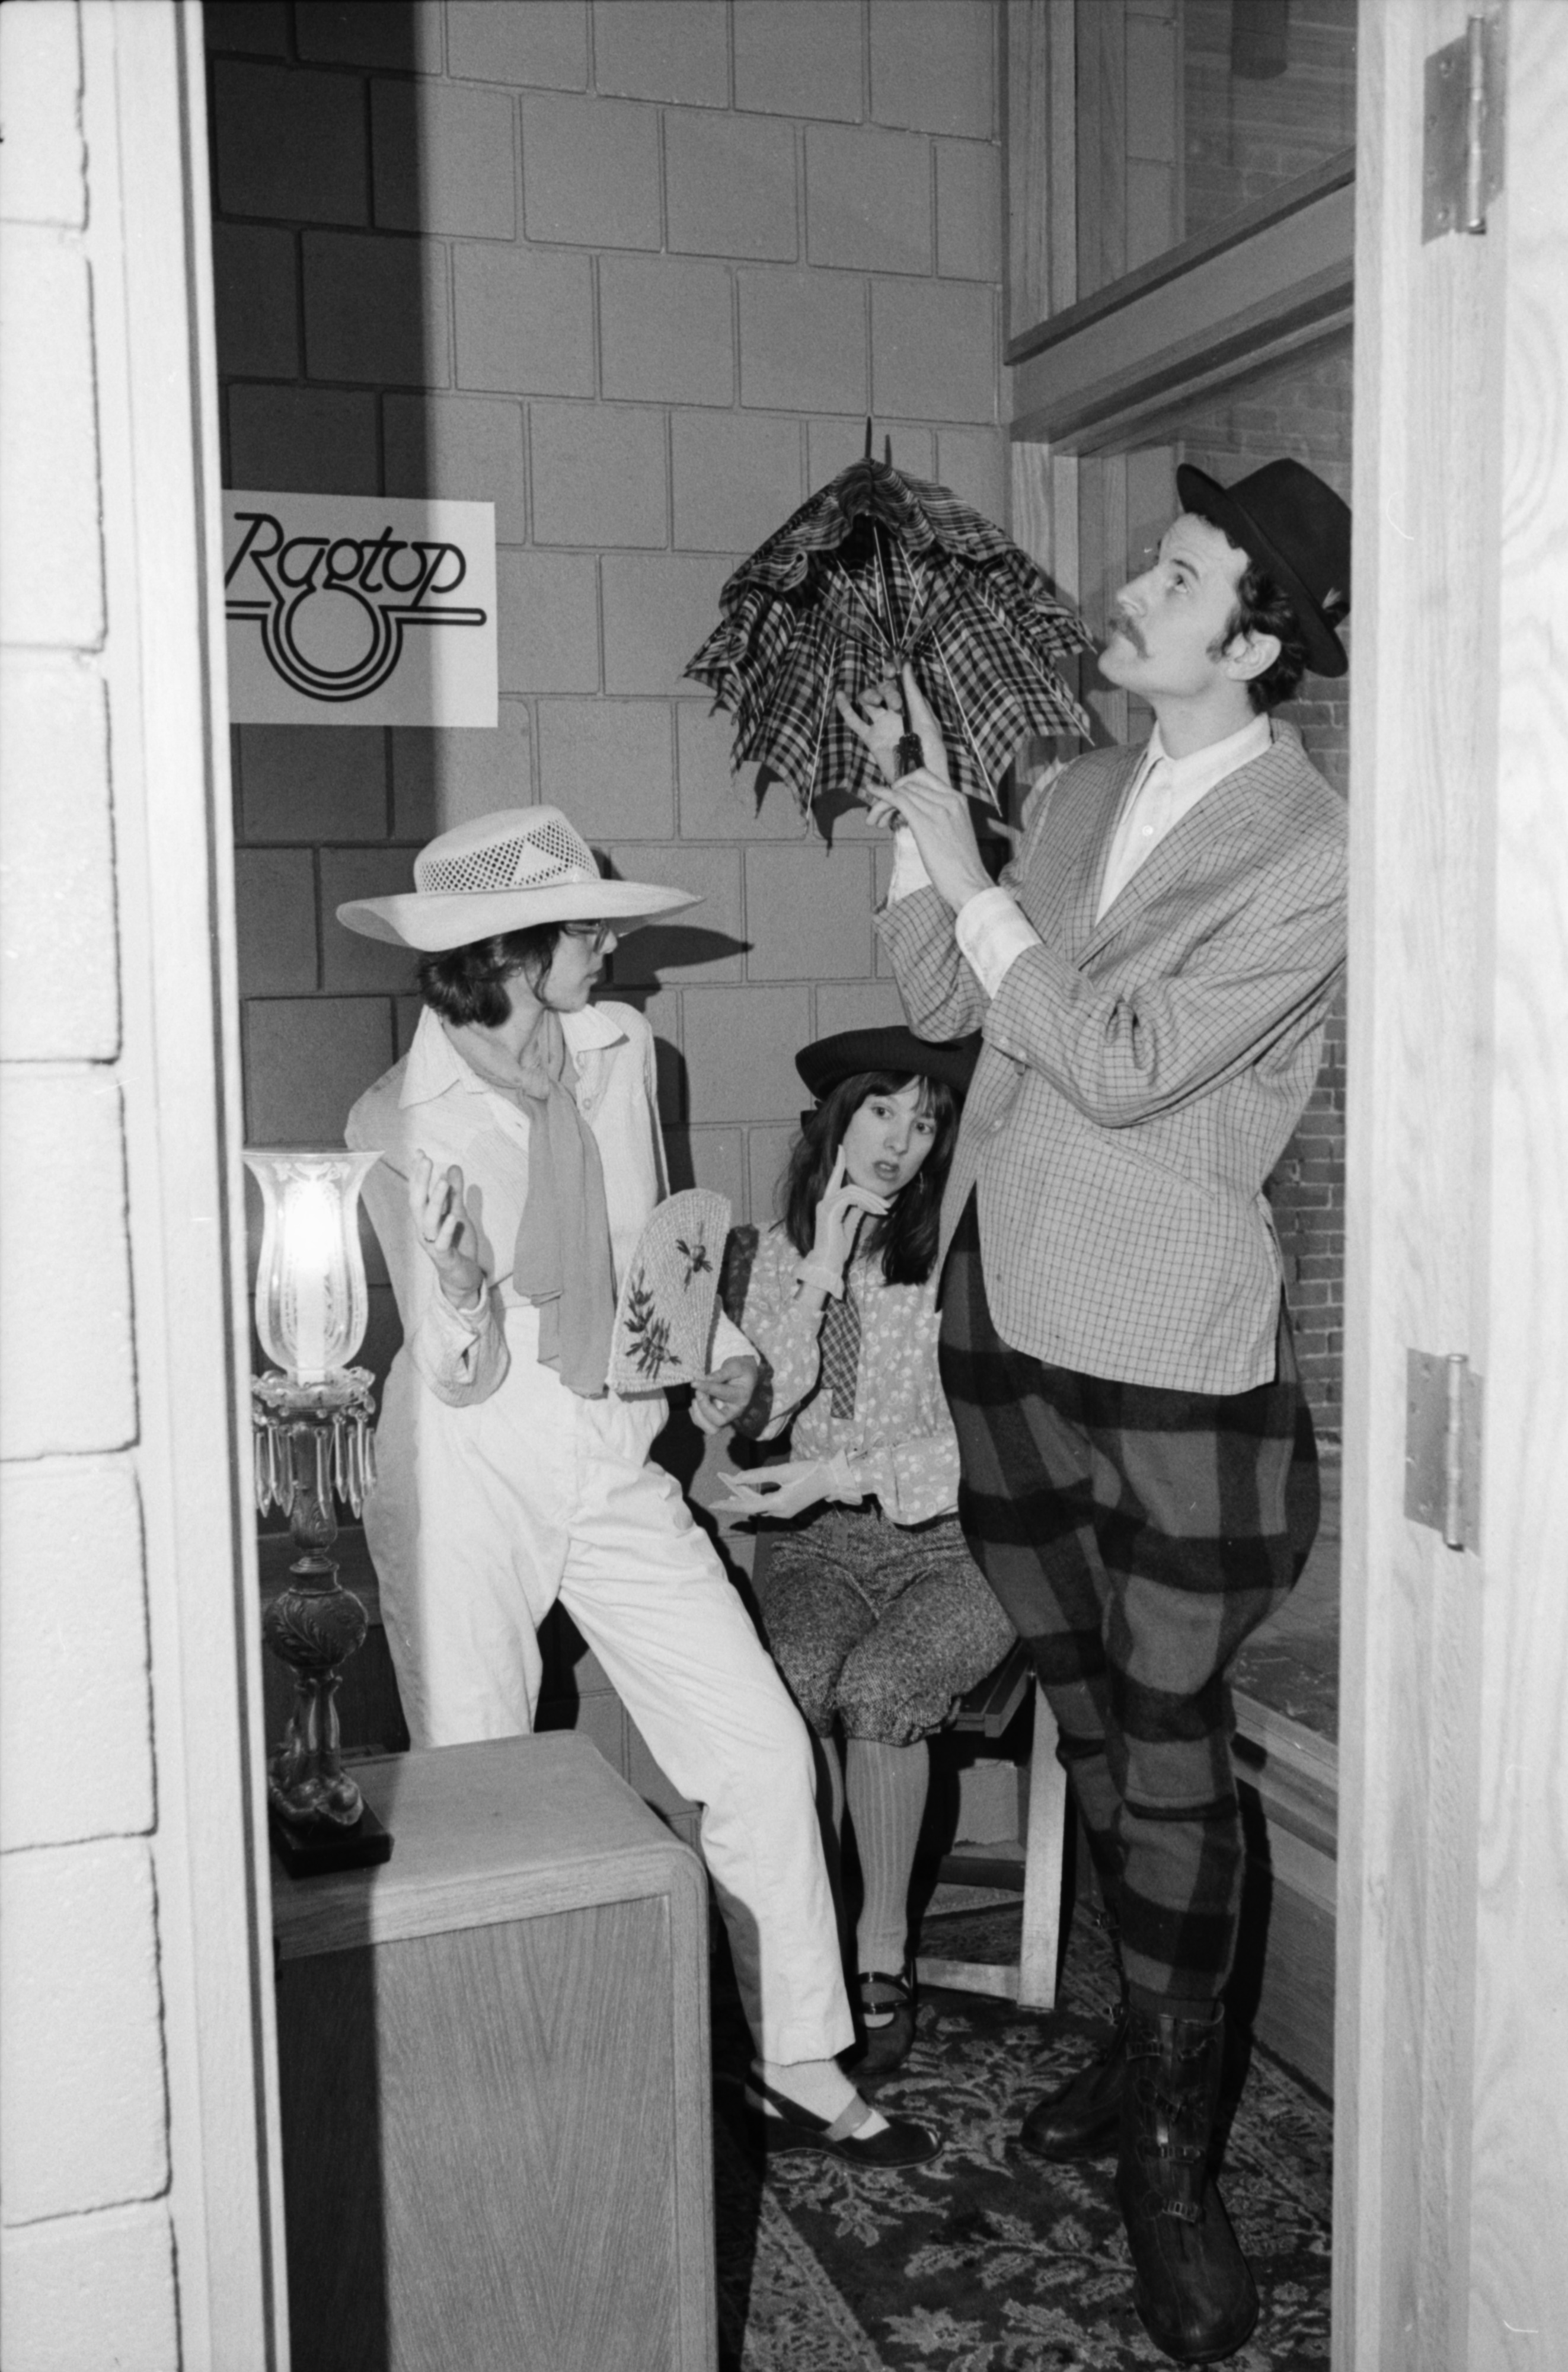 Storefront Modeling at Ragtop Clothing Store, January 1978 image